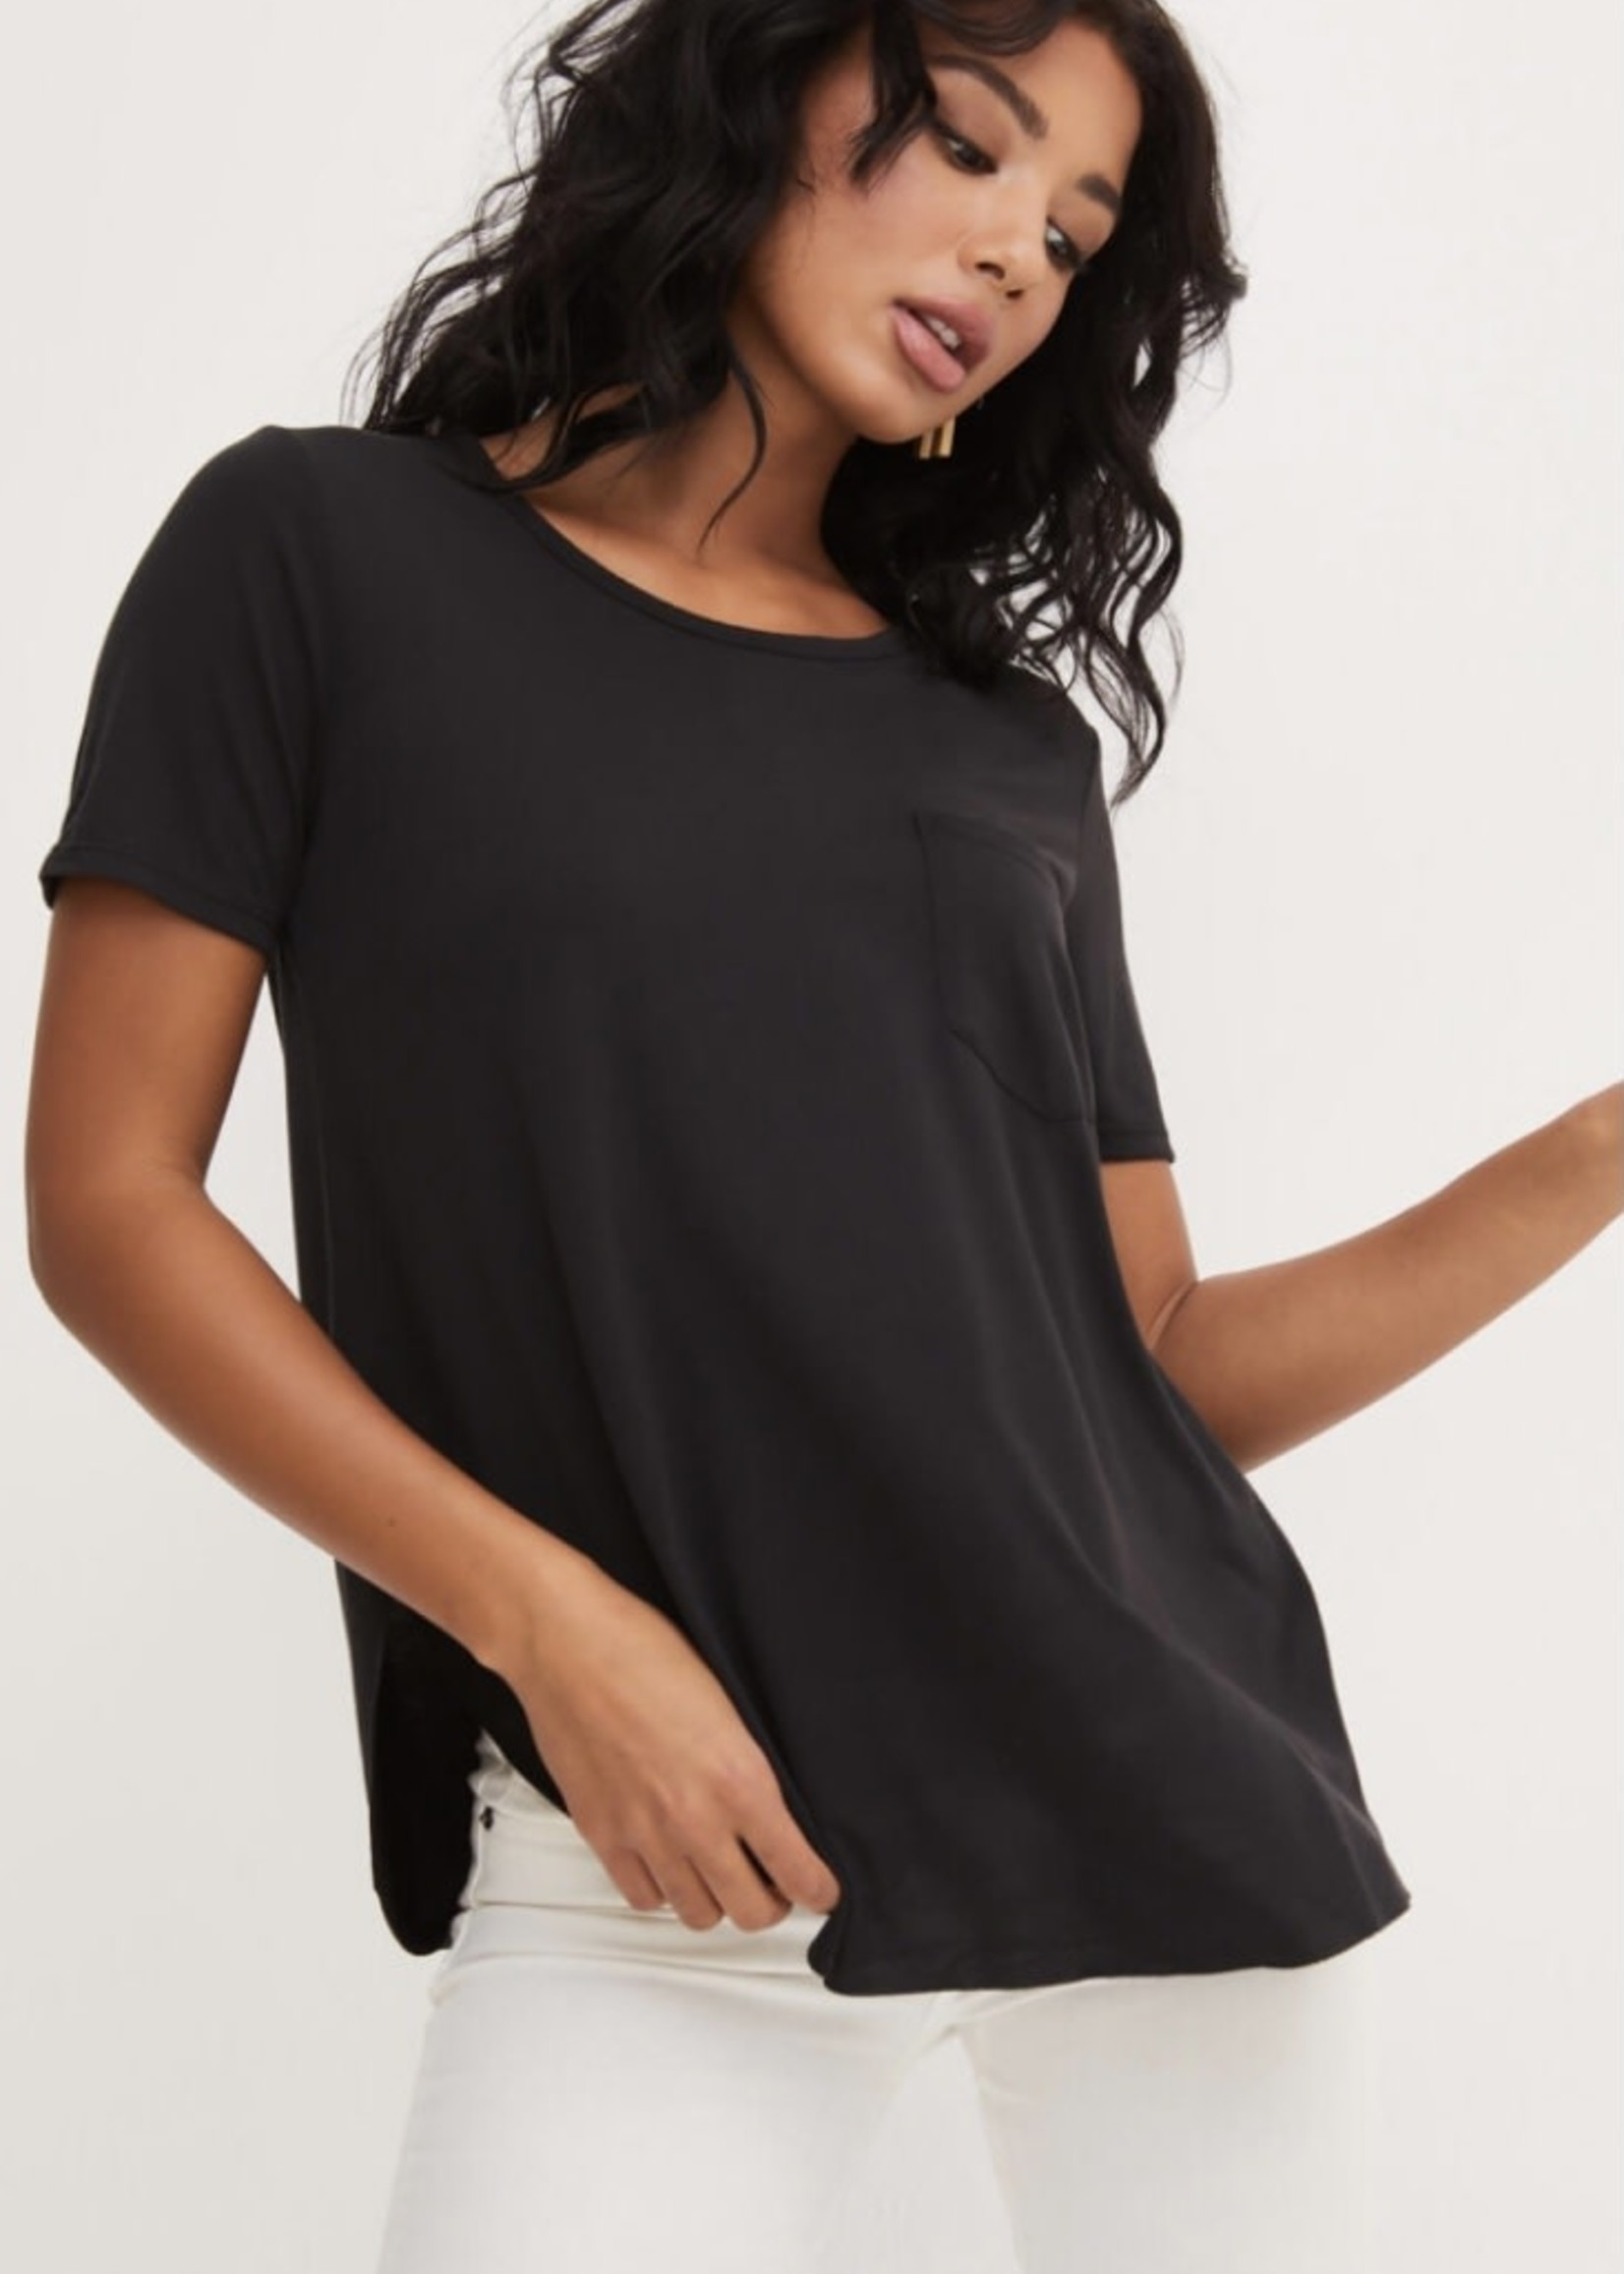 LUSH Scoop Neck Side Slit Tee, more colours